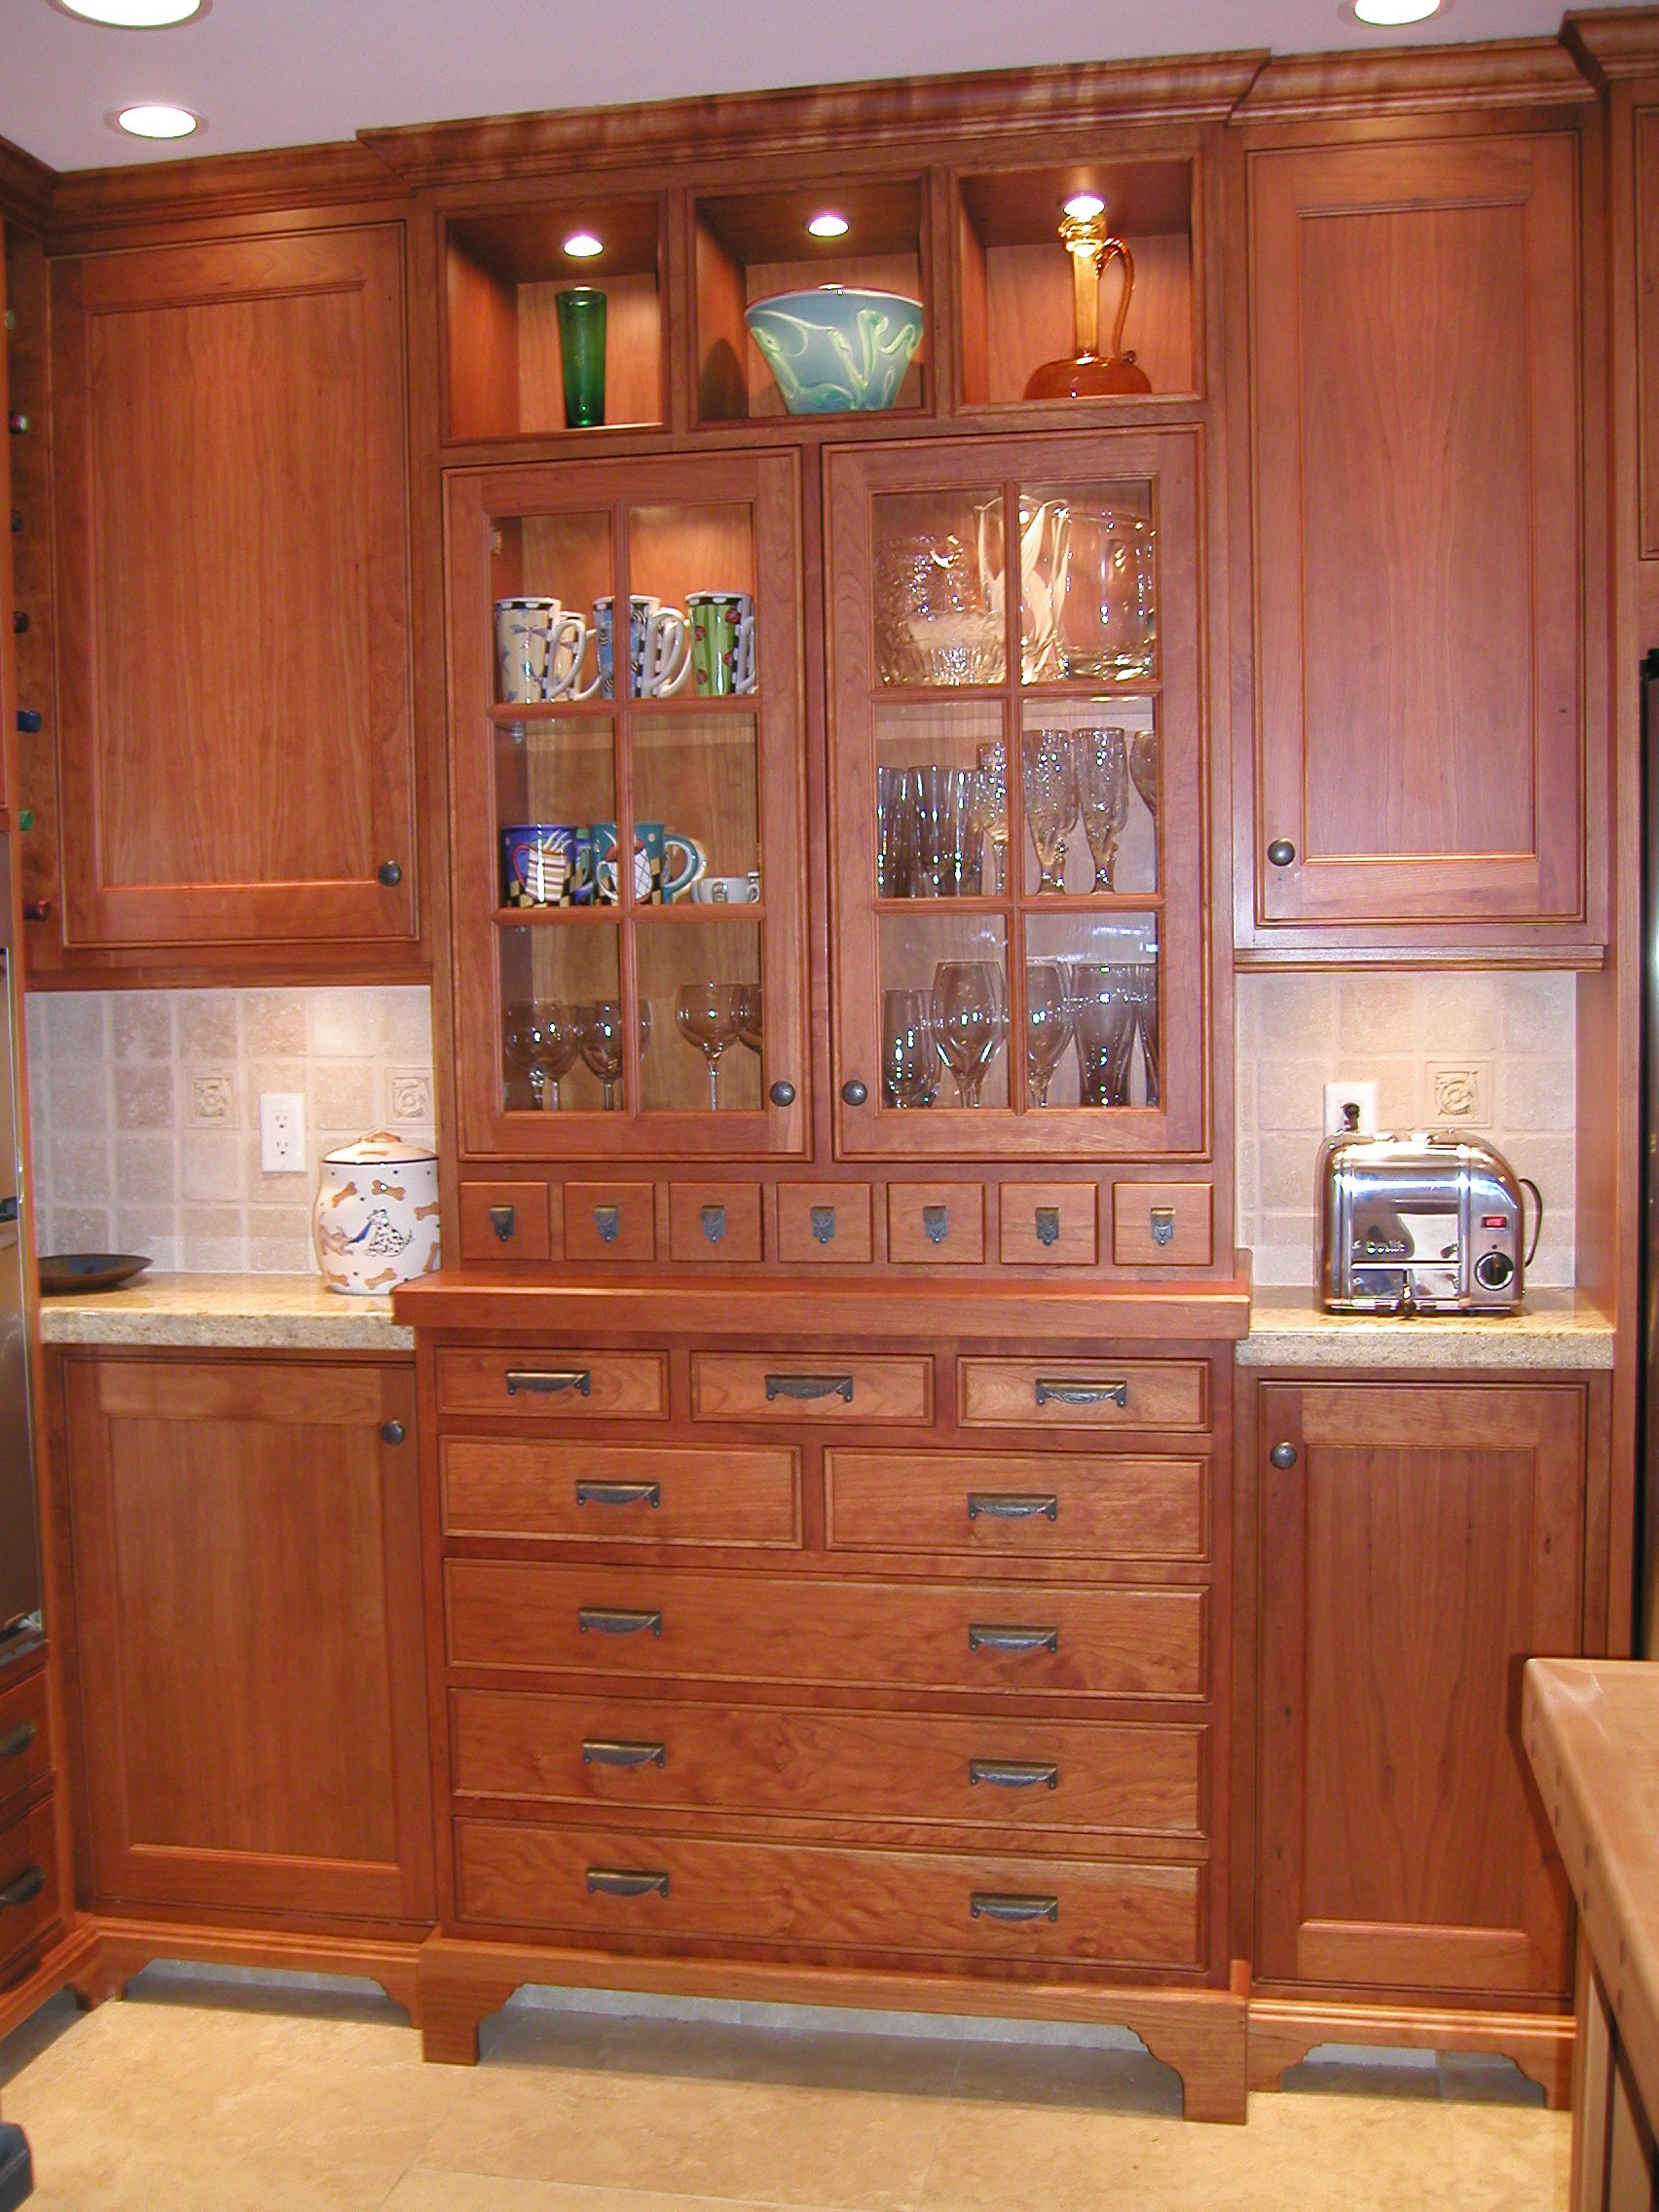 Previous painting projects by new life painting for New kitchen cabinets